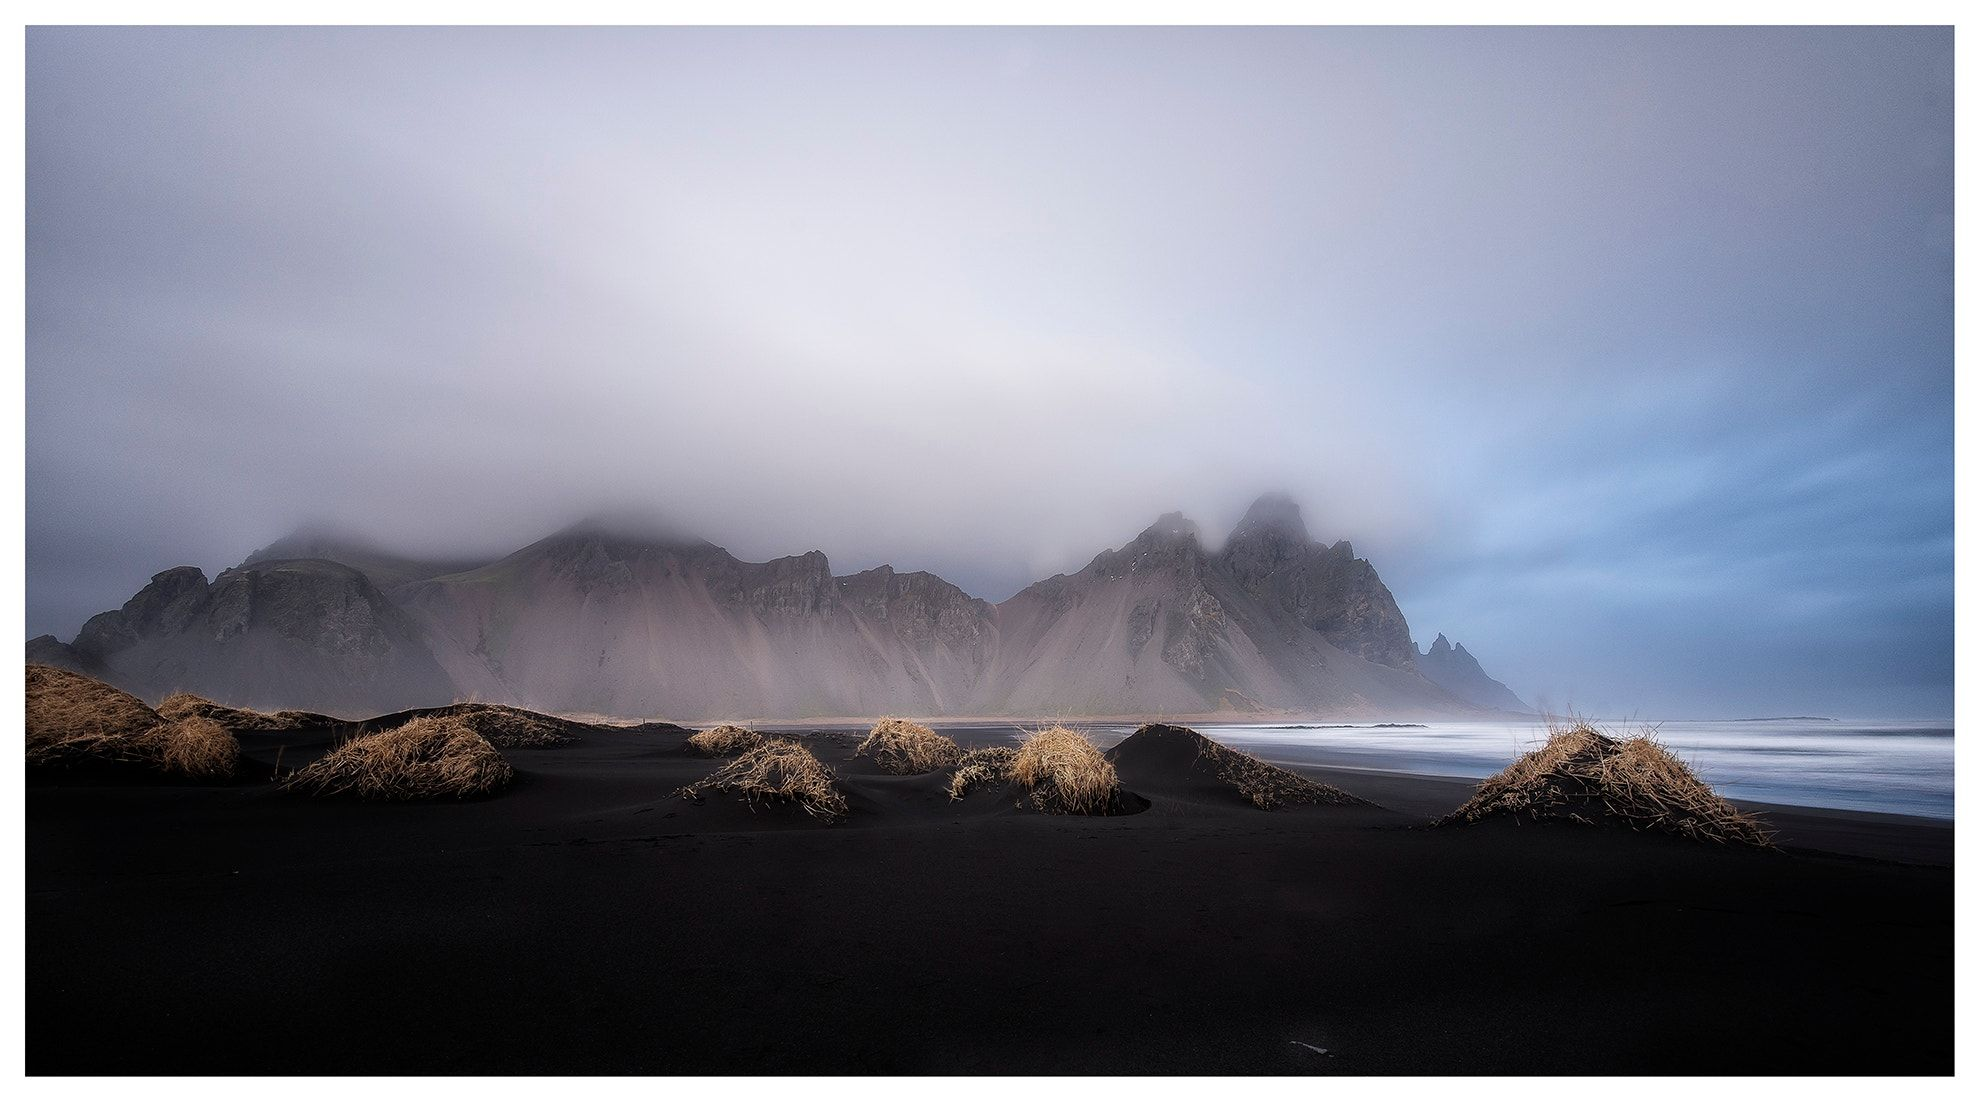 Vestrahorn in Stokksnes - With its black sand and craggy mountains, this beach near Höfn in the southeast of the island is unlike anything you've seen before